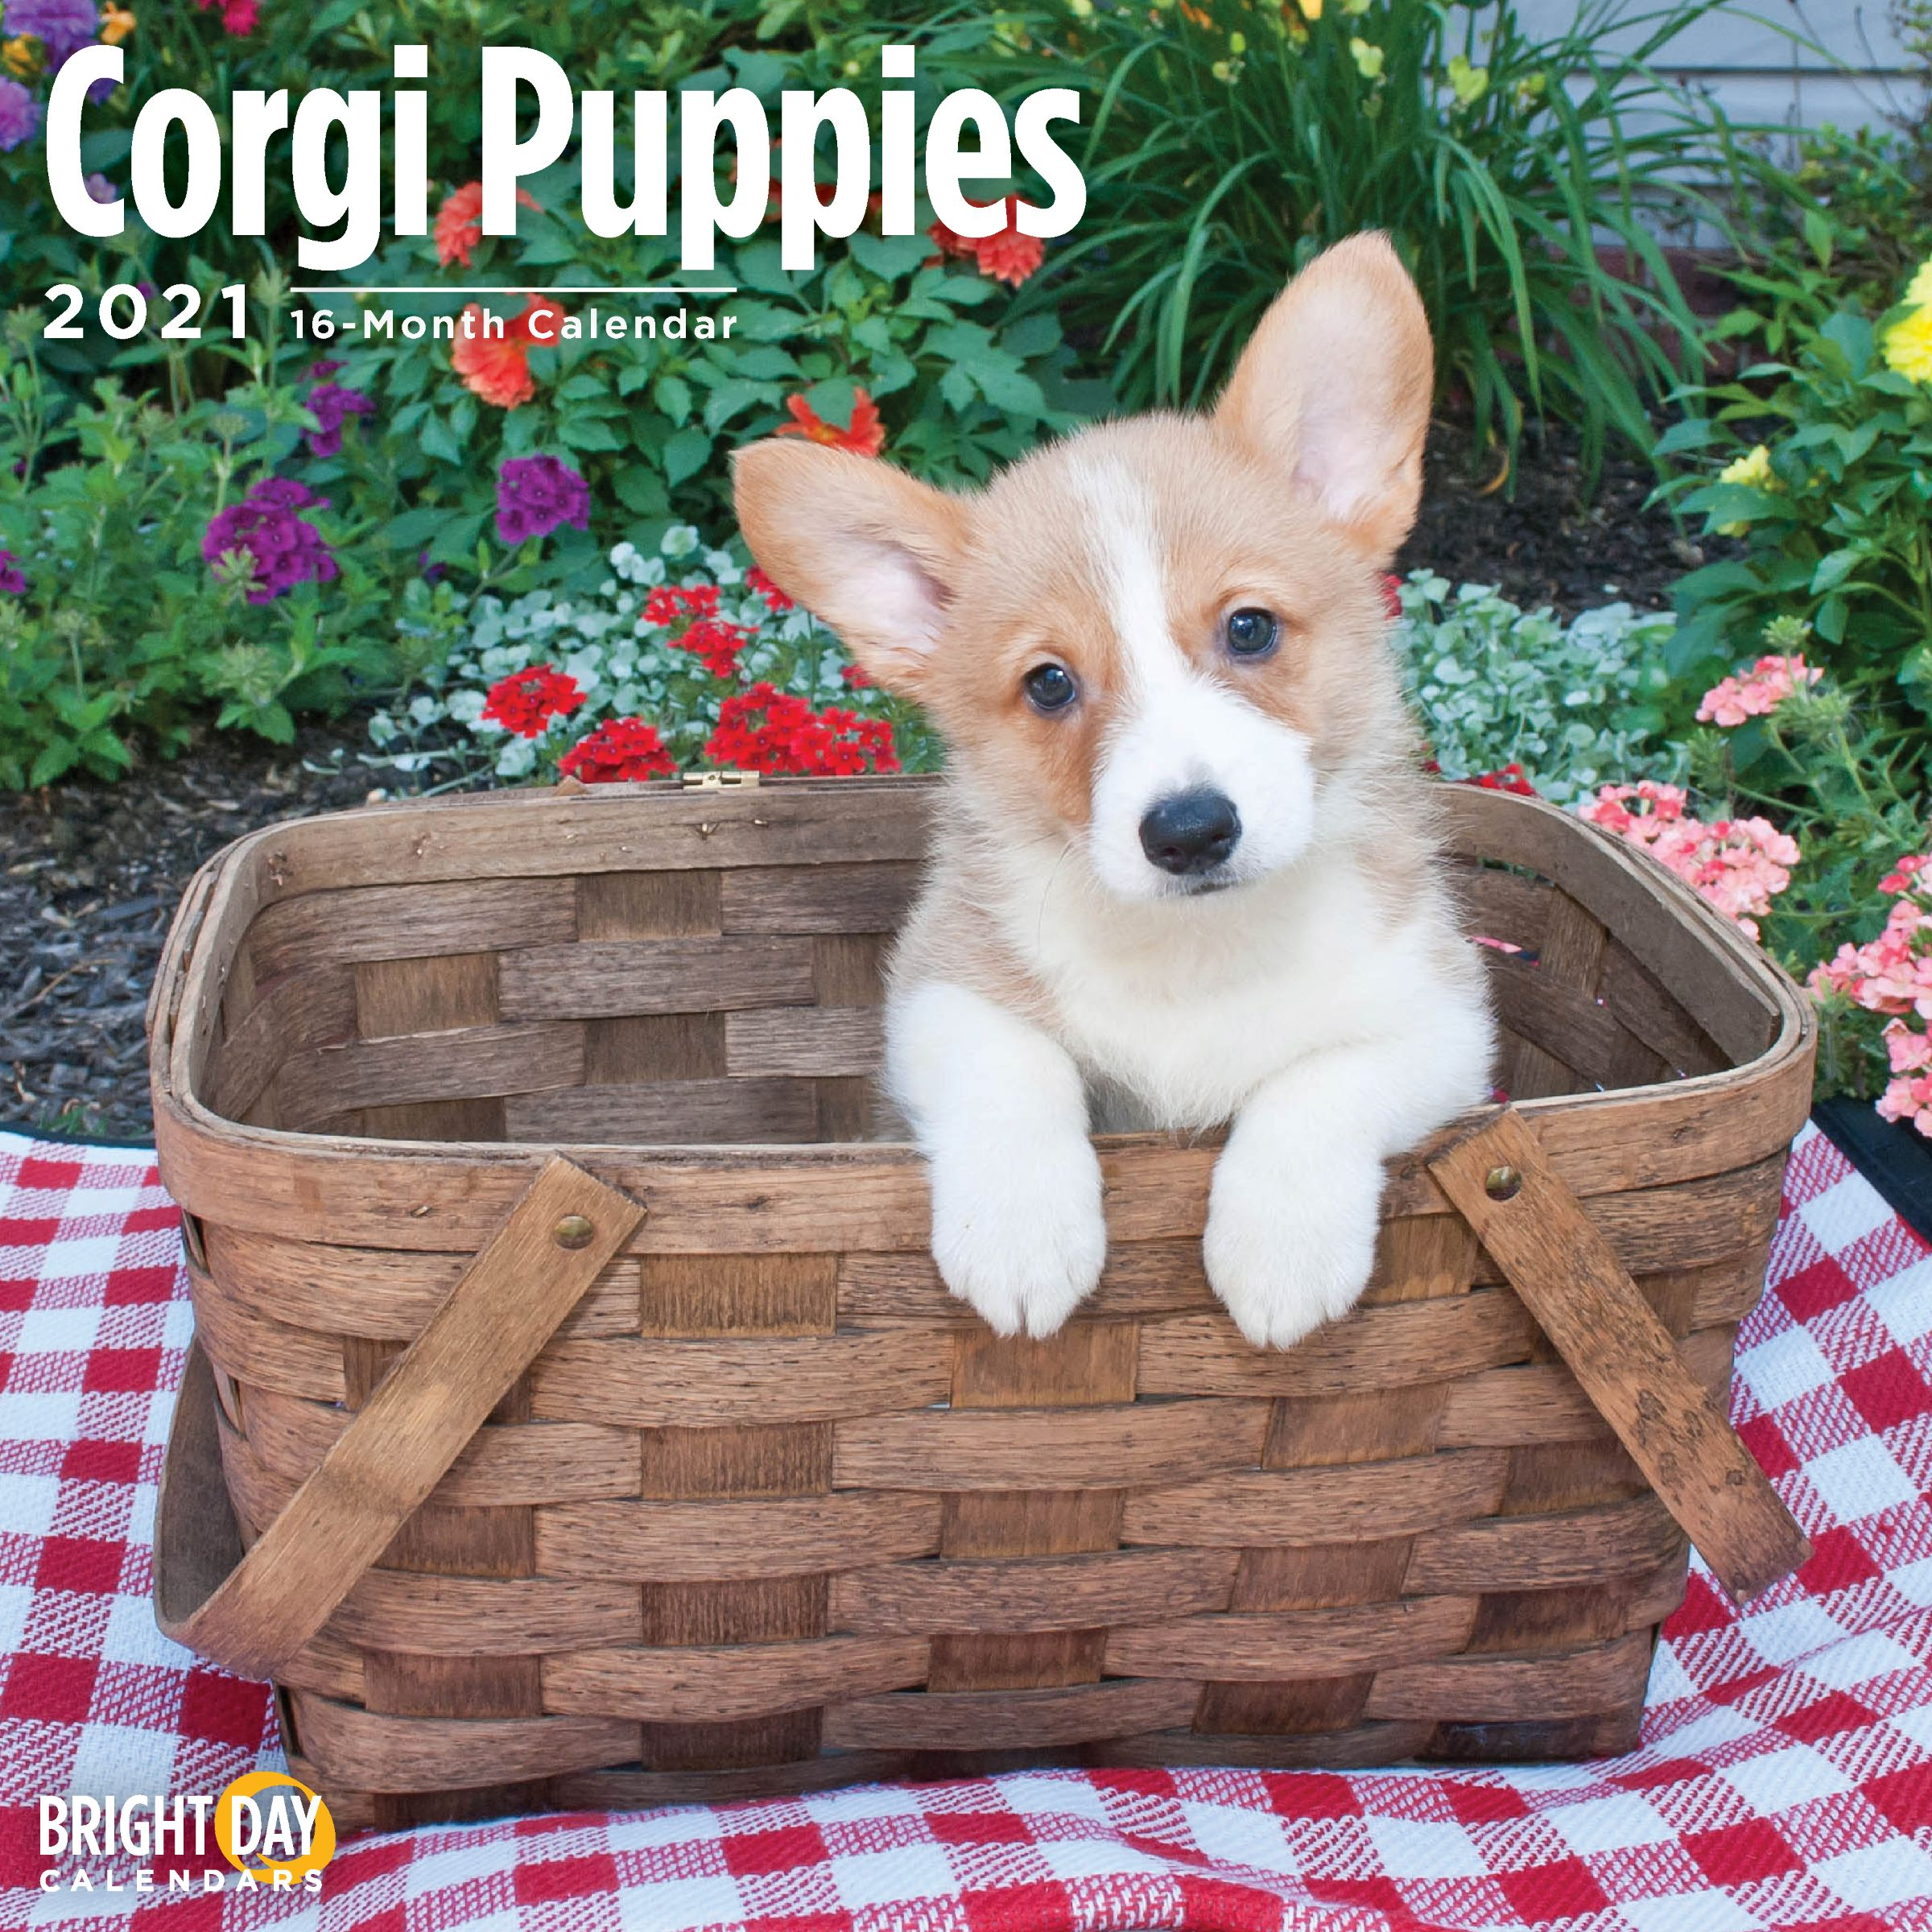 2021 Corgi Puppies Wall Calendar